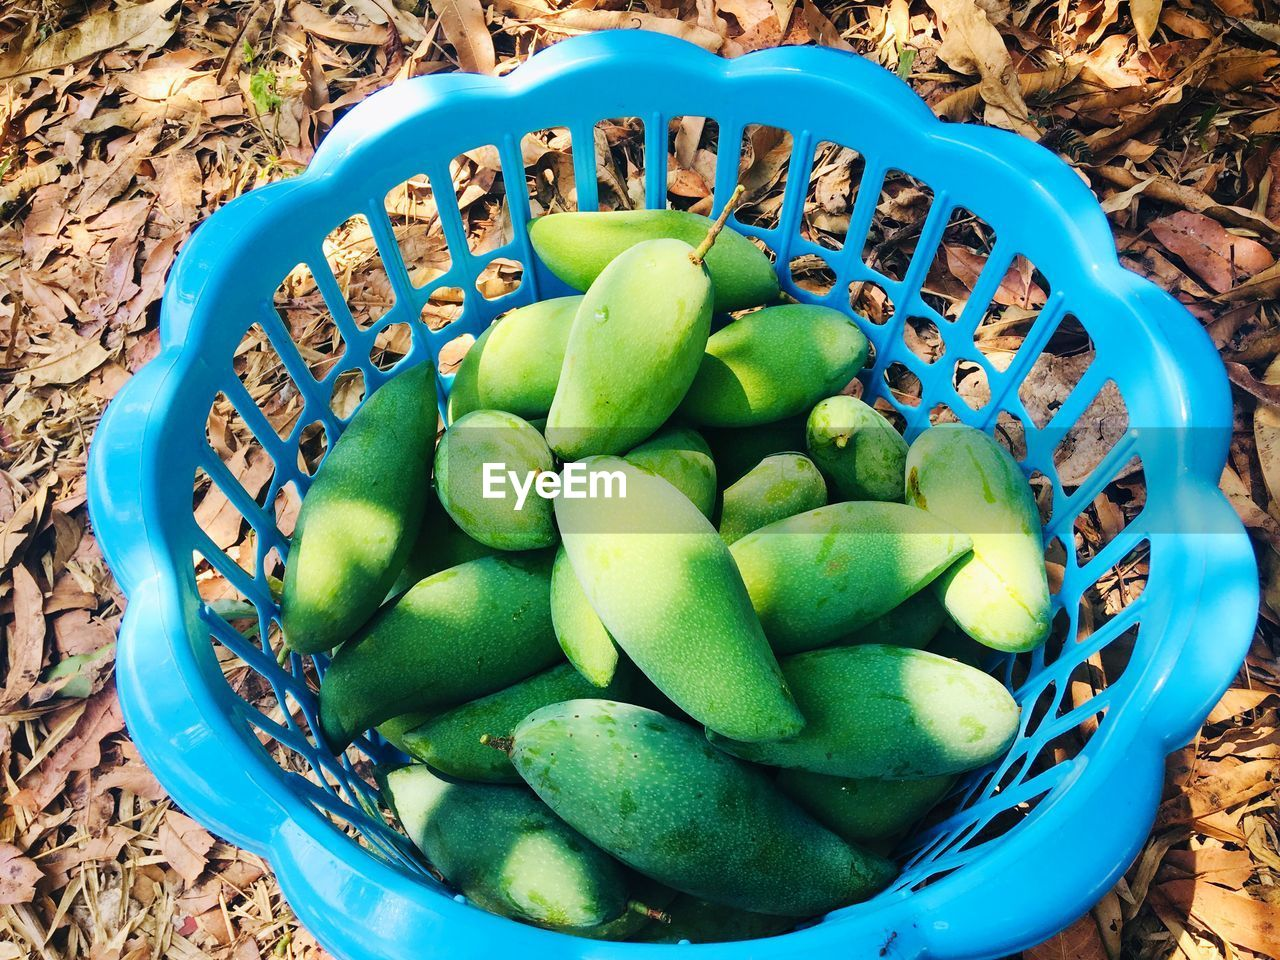 container, food, basket, high angle view, healthy eating, food and drink, green color, day, freshness, fruit, land, no people, wellbeing, nature, blue, bucket, large group of objects, field, still life, close-up, turquoise colored